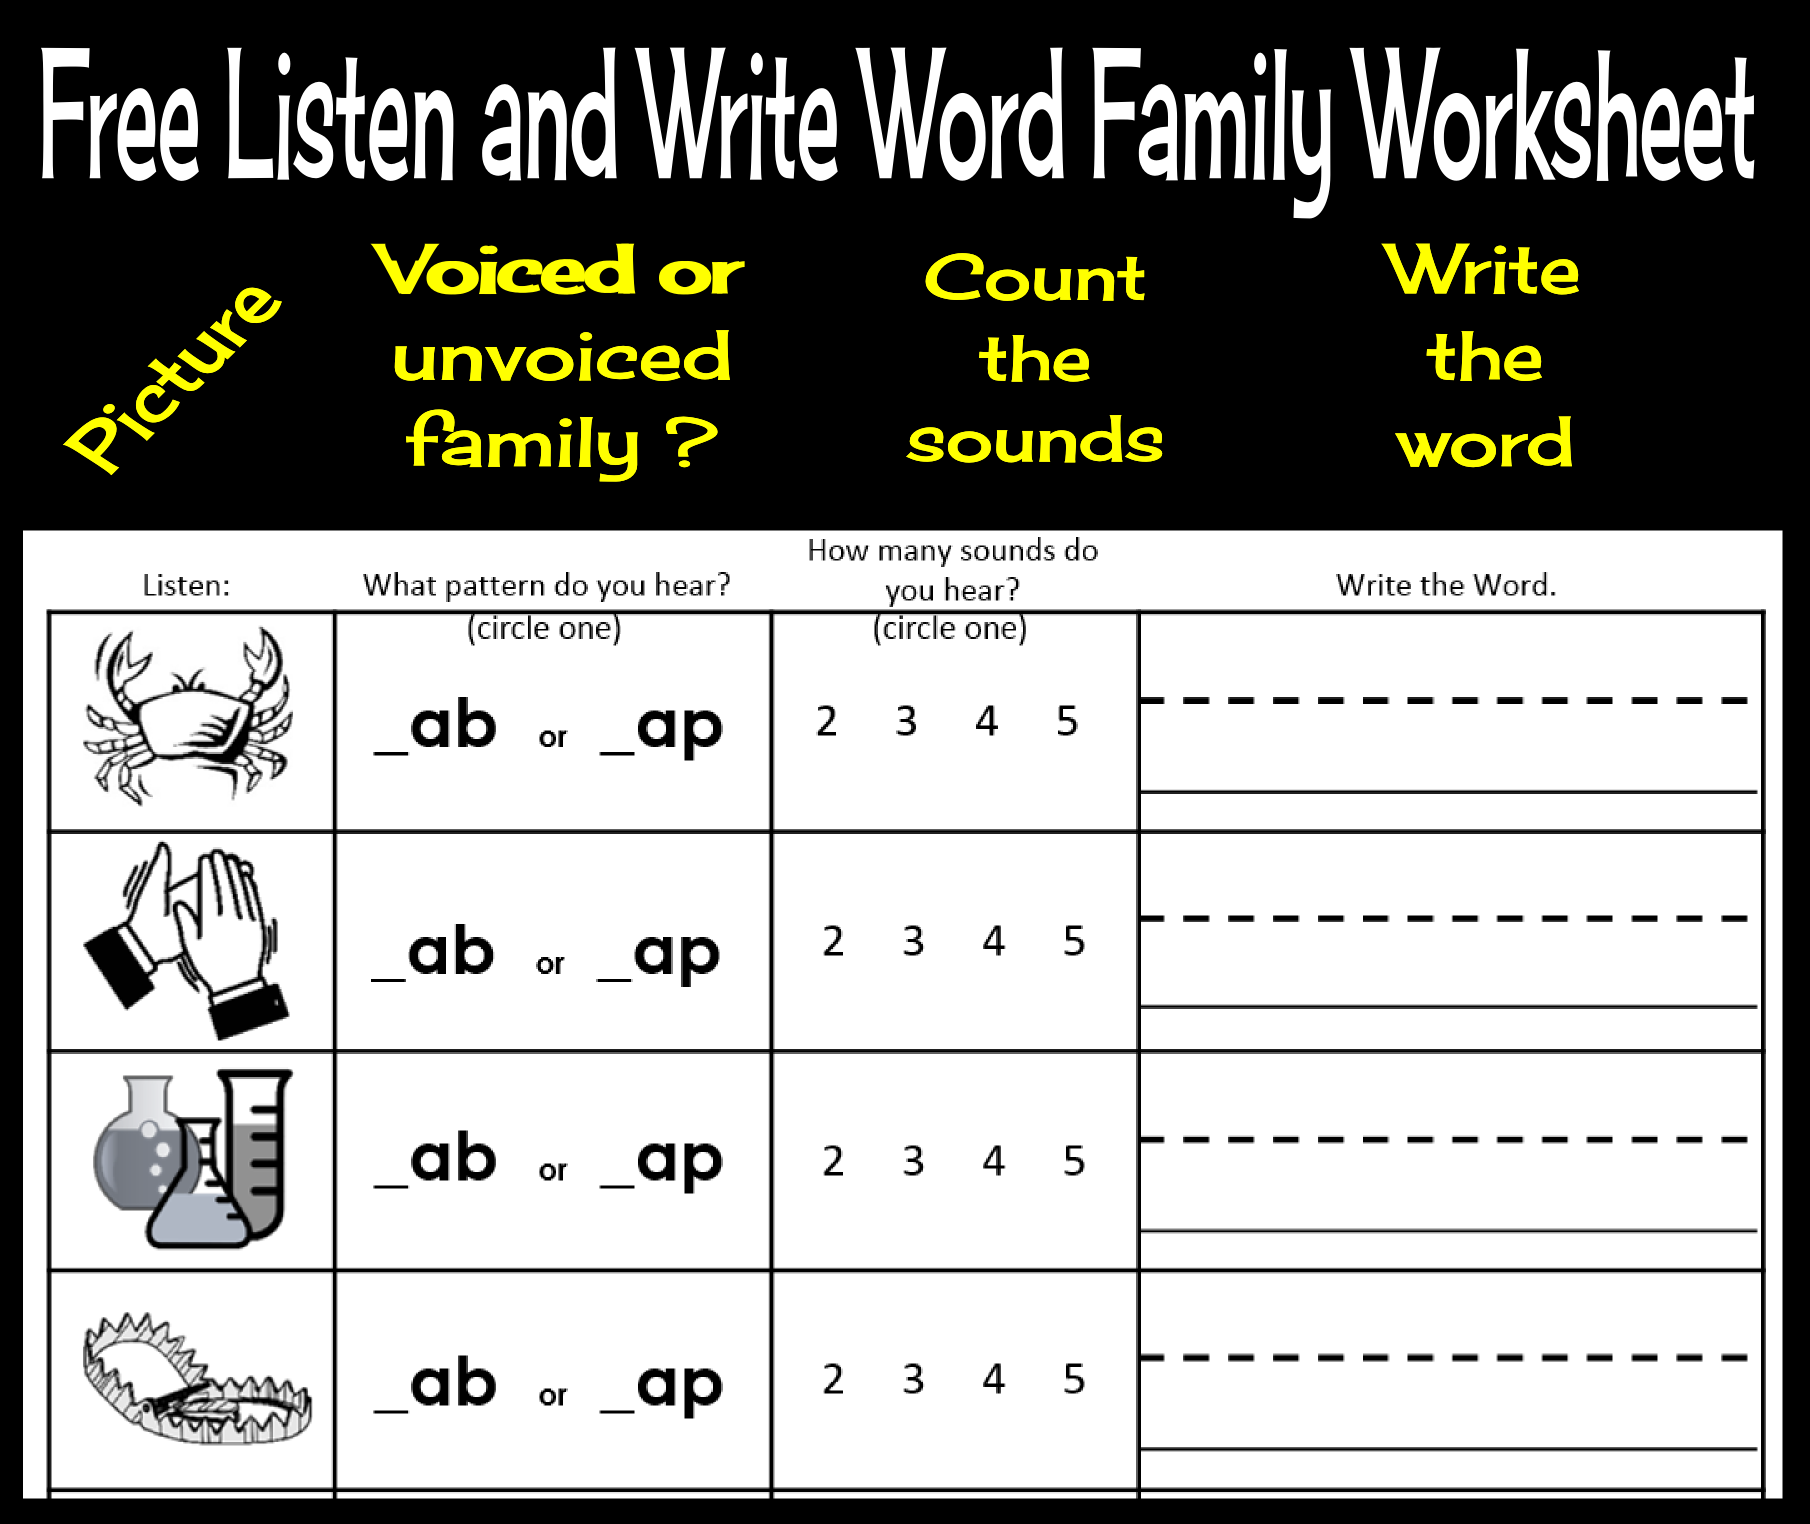 Free Listen And Write Word Families Book 1 Sample Page